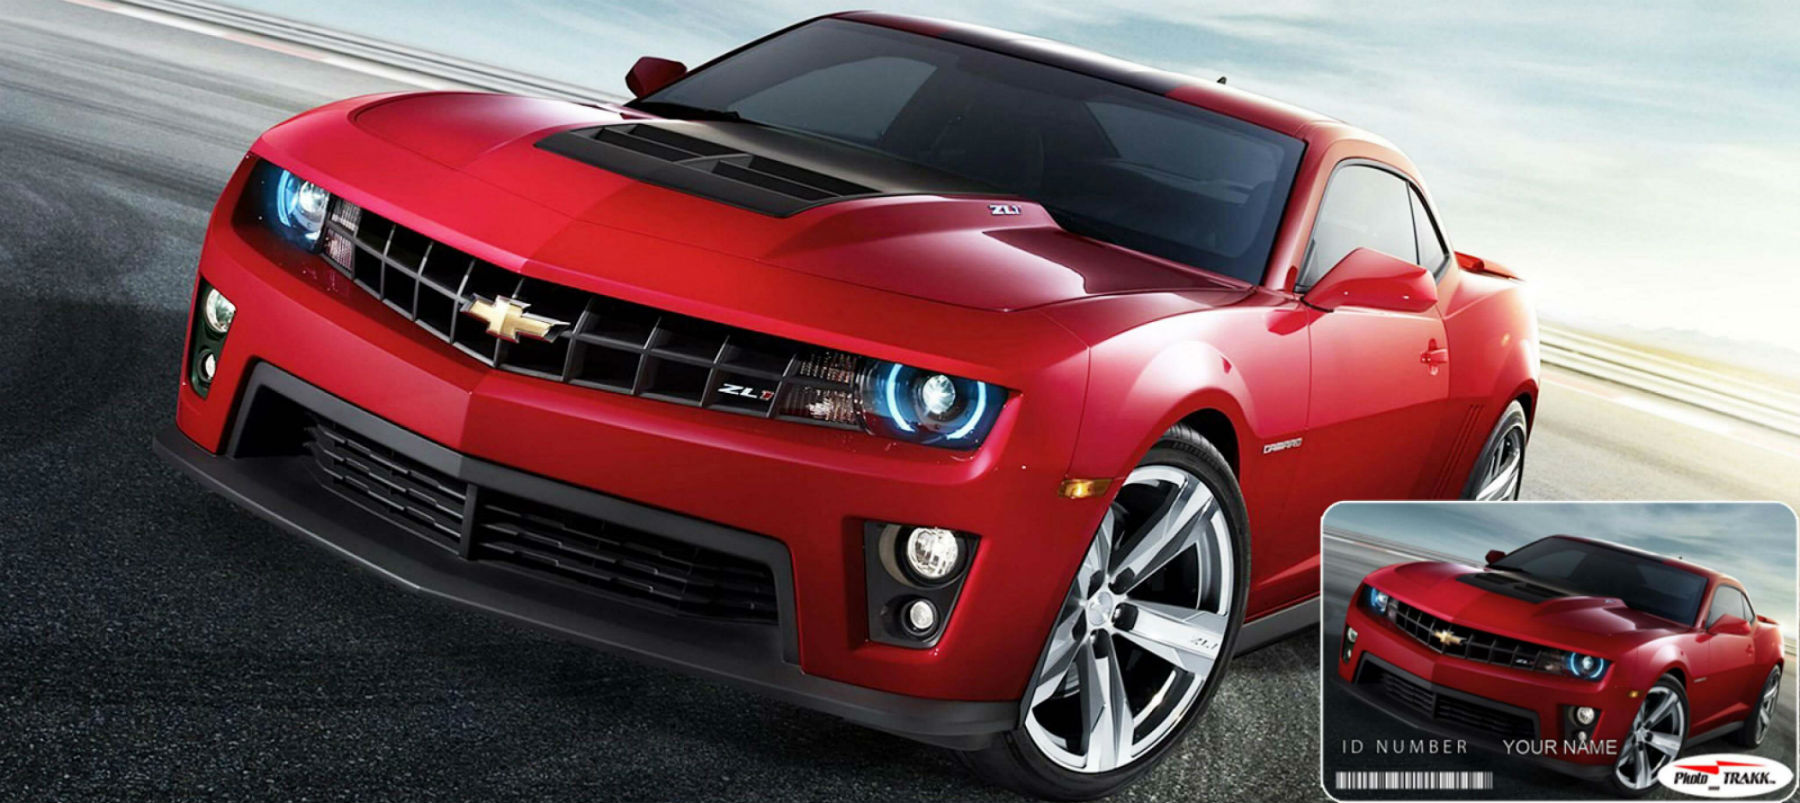 Chevrolet Camaro ZL1 Red Color with Photo Trakk Vehicle Registration ID Card